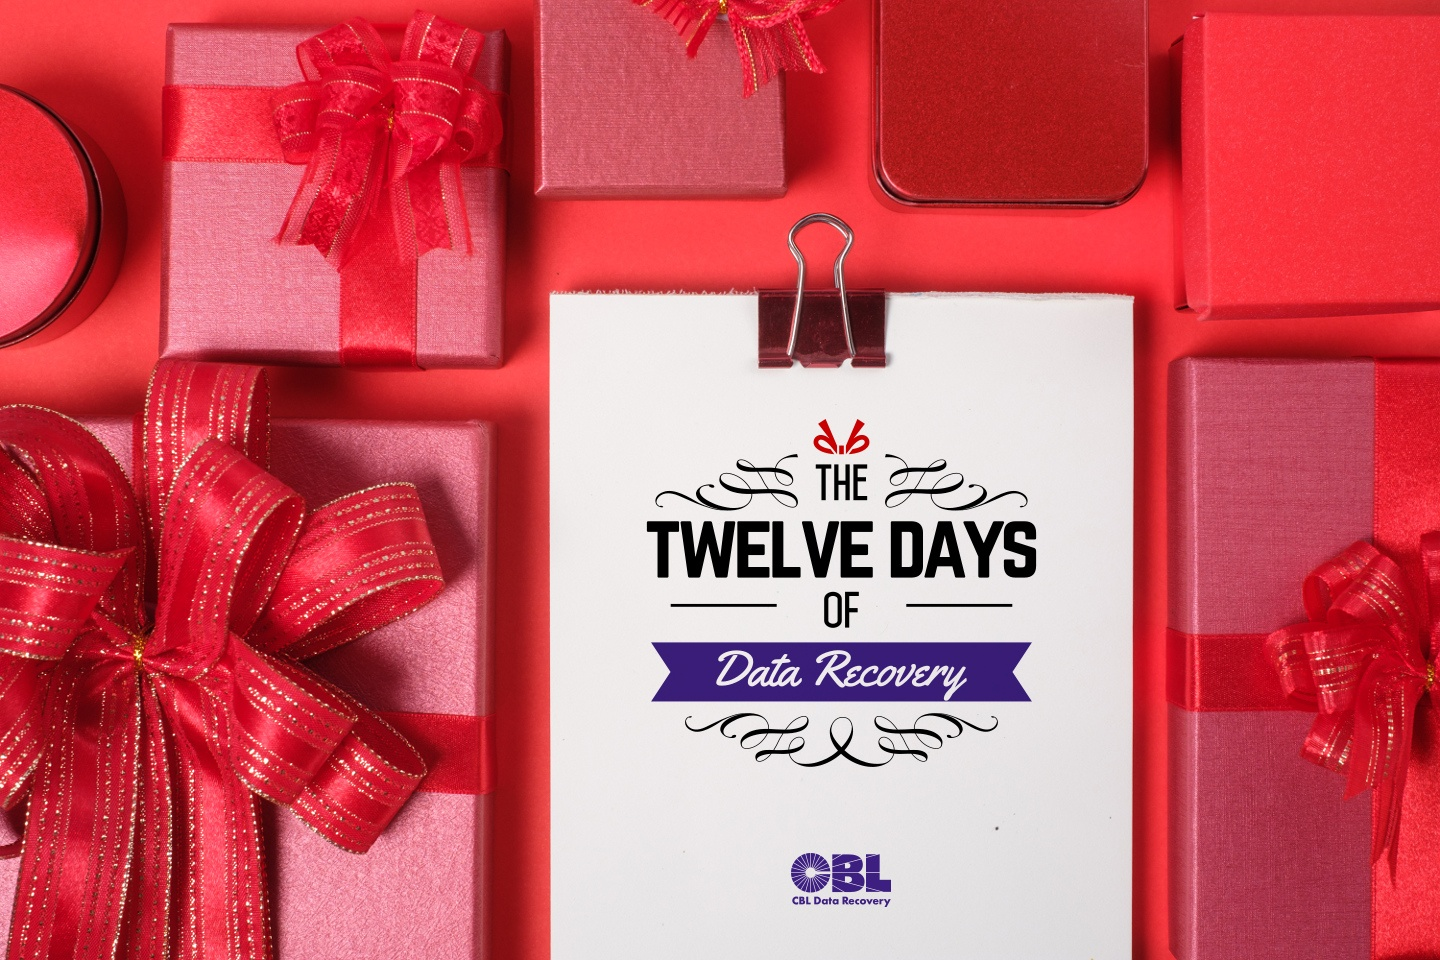 The 12 Days of Data Recovery at CBL